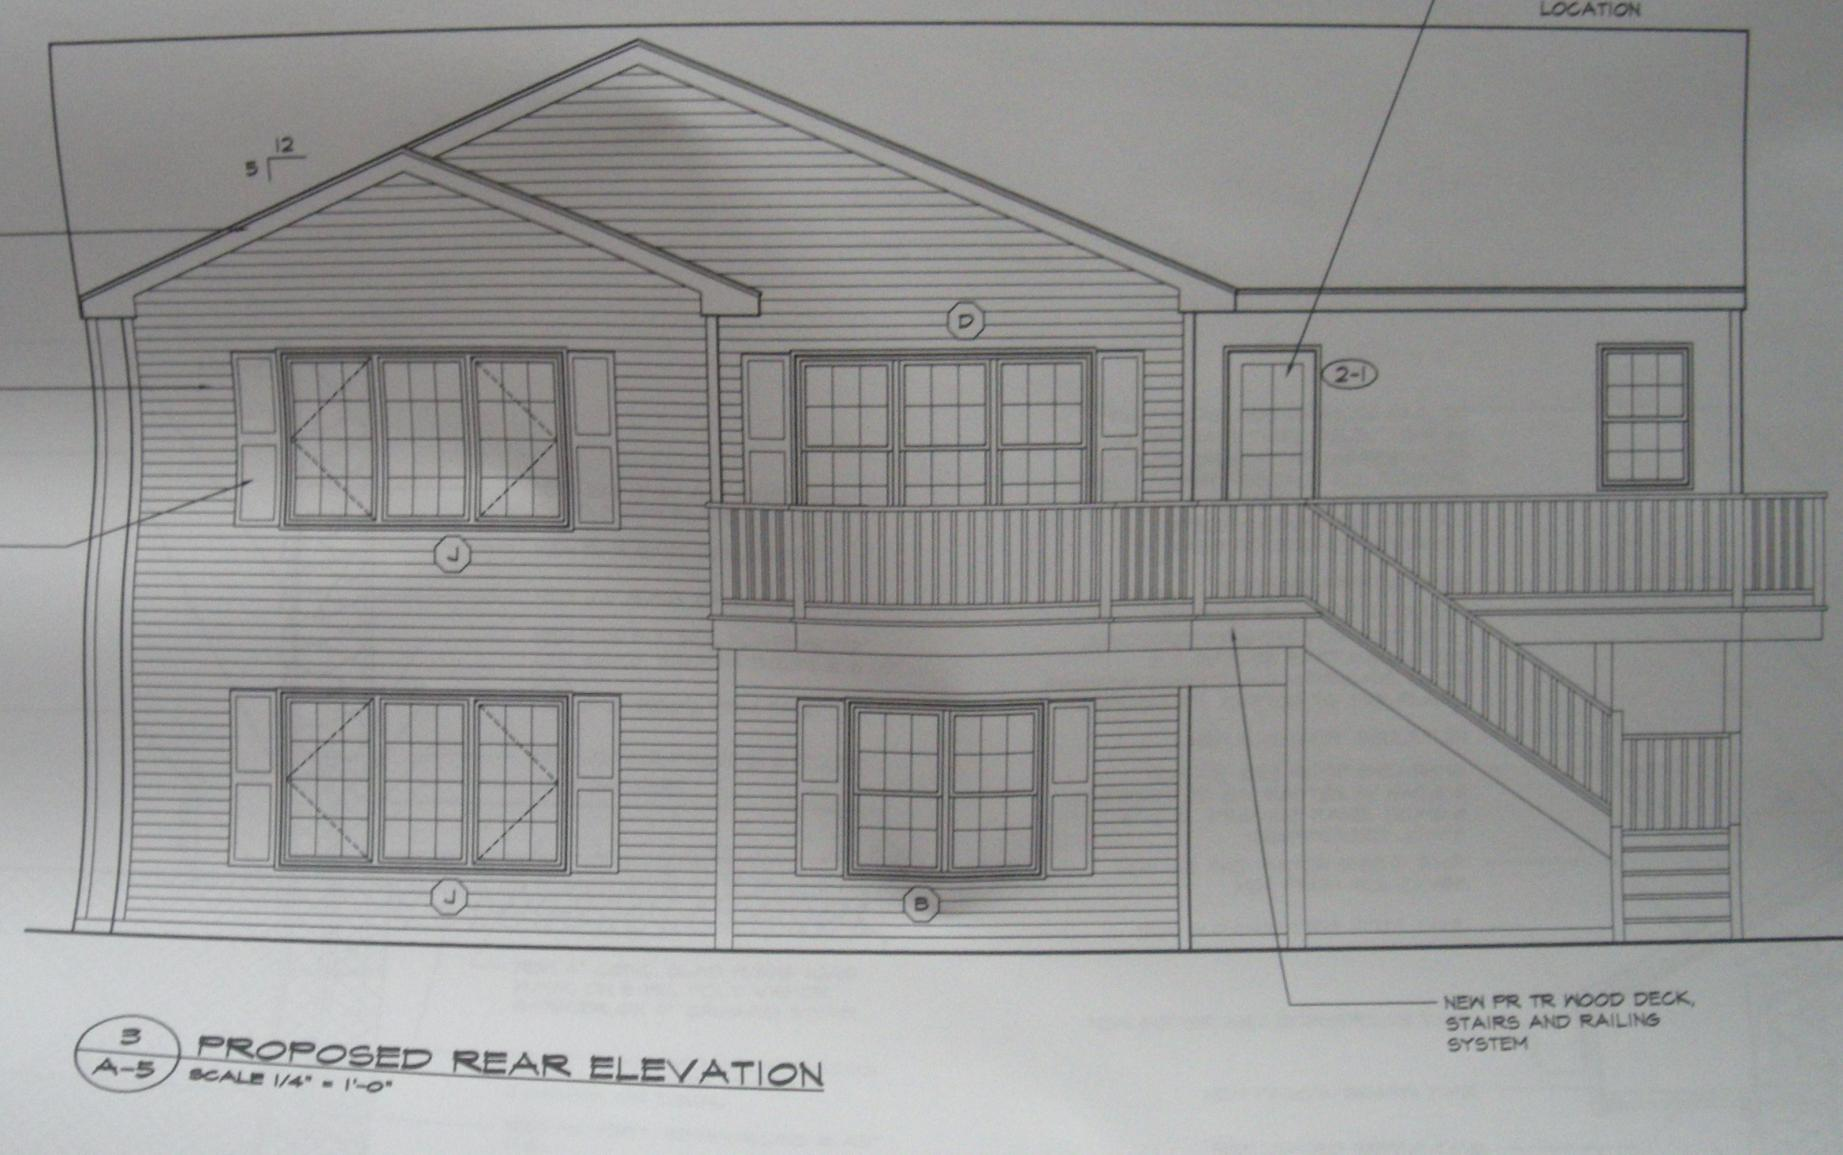 CookeCarpentry s Personal Home Addition Remodel plans 004 jpg. CookeCarpentry s Personal Home Addition Remodel   Construction